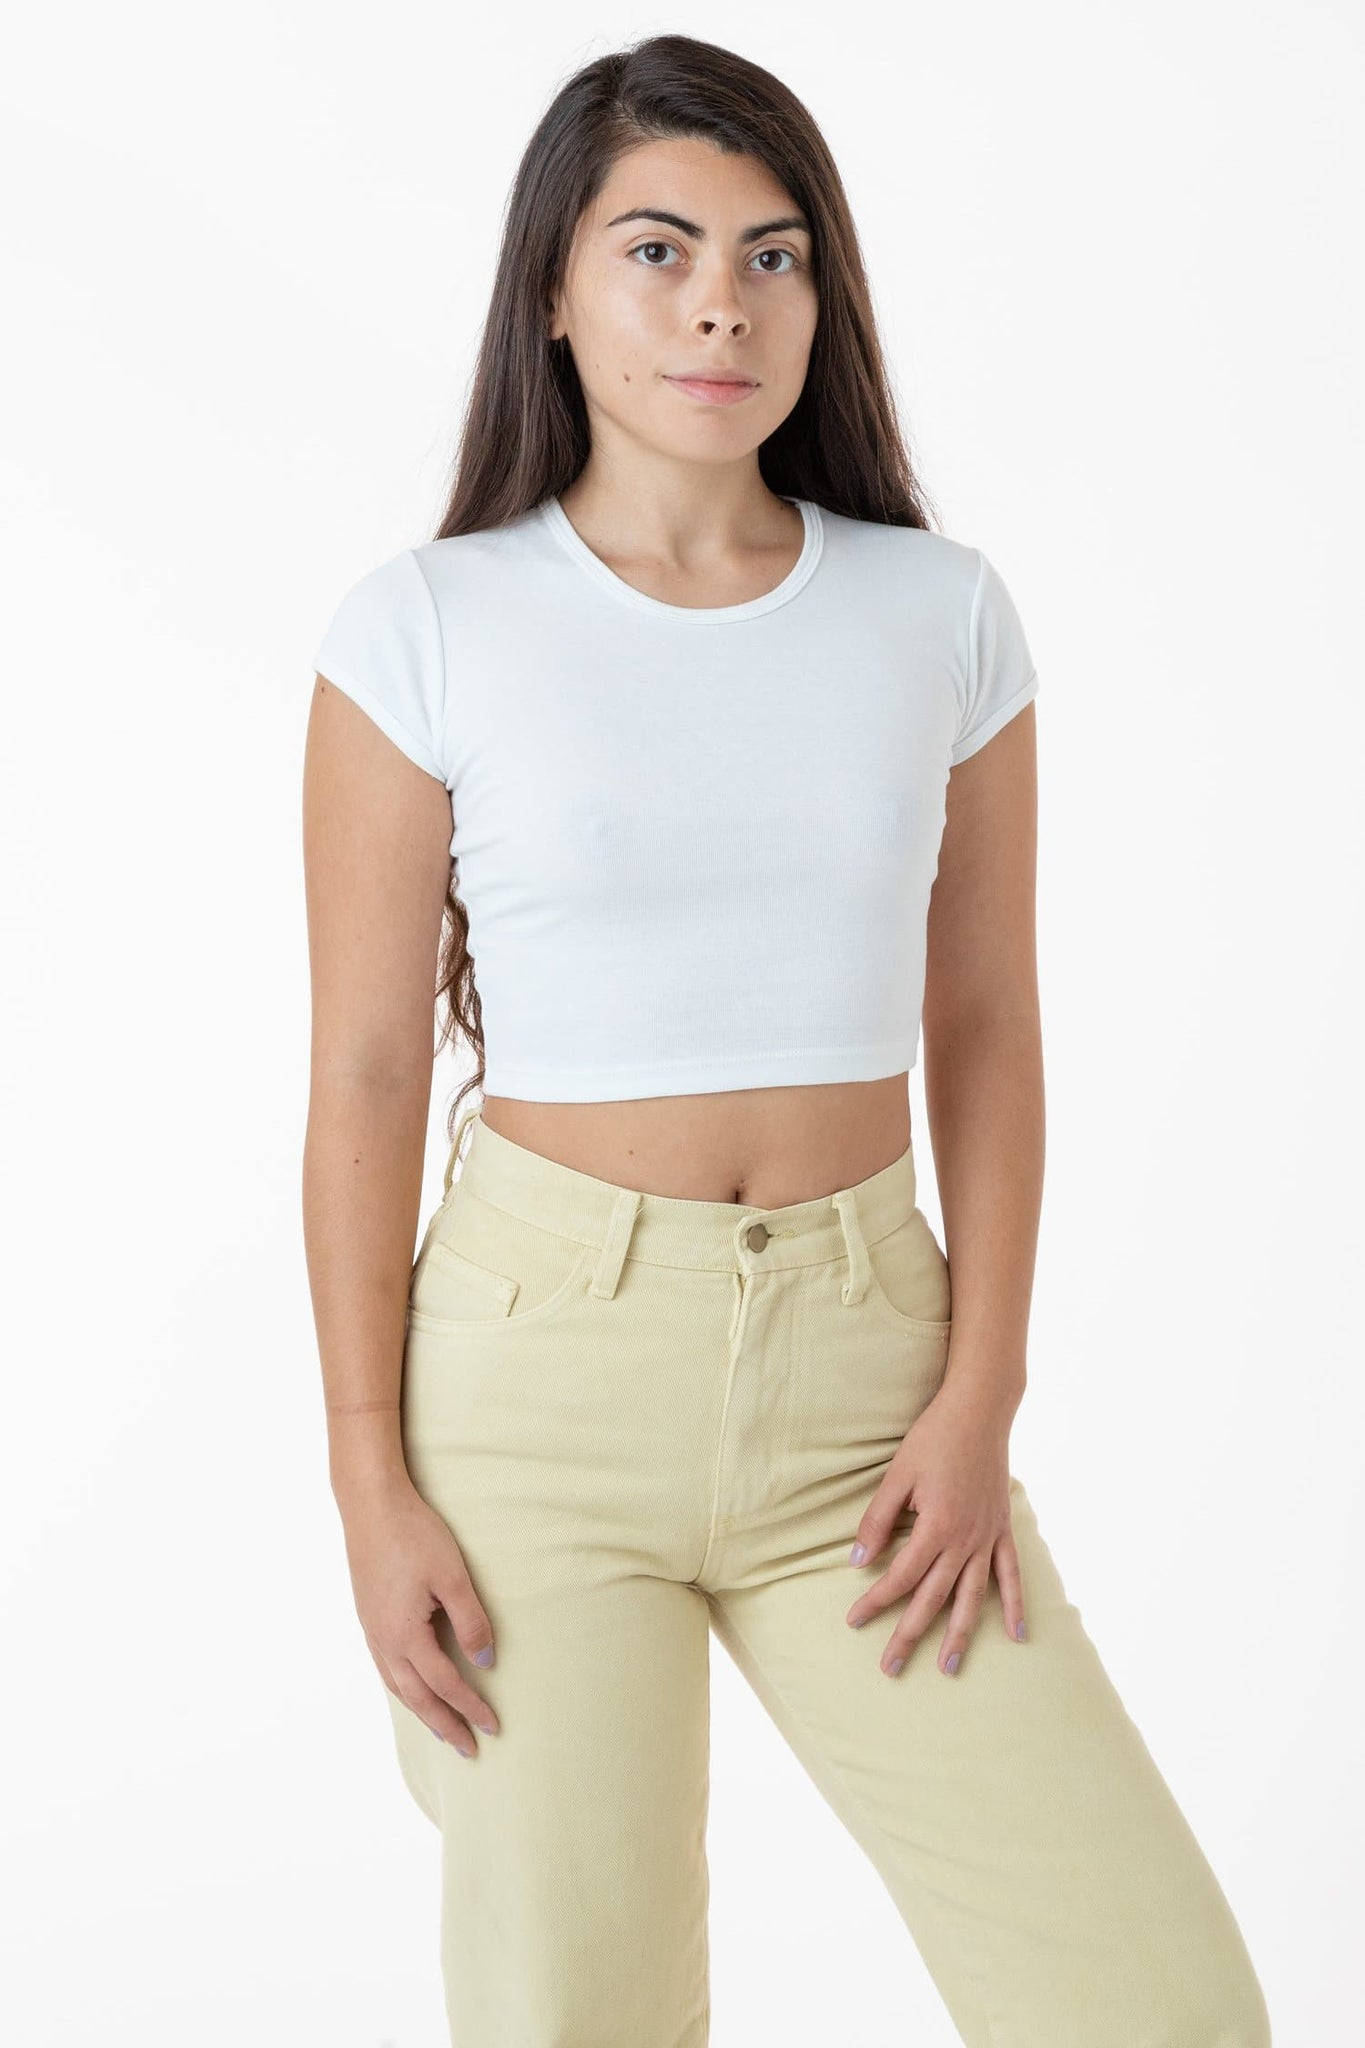 43056 - Cap Sleeve Baby Rib Crop Top